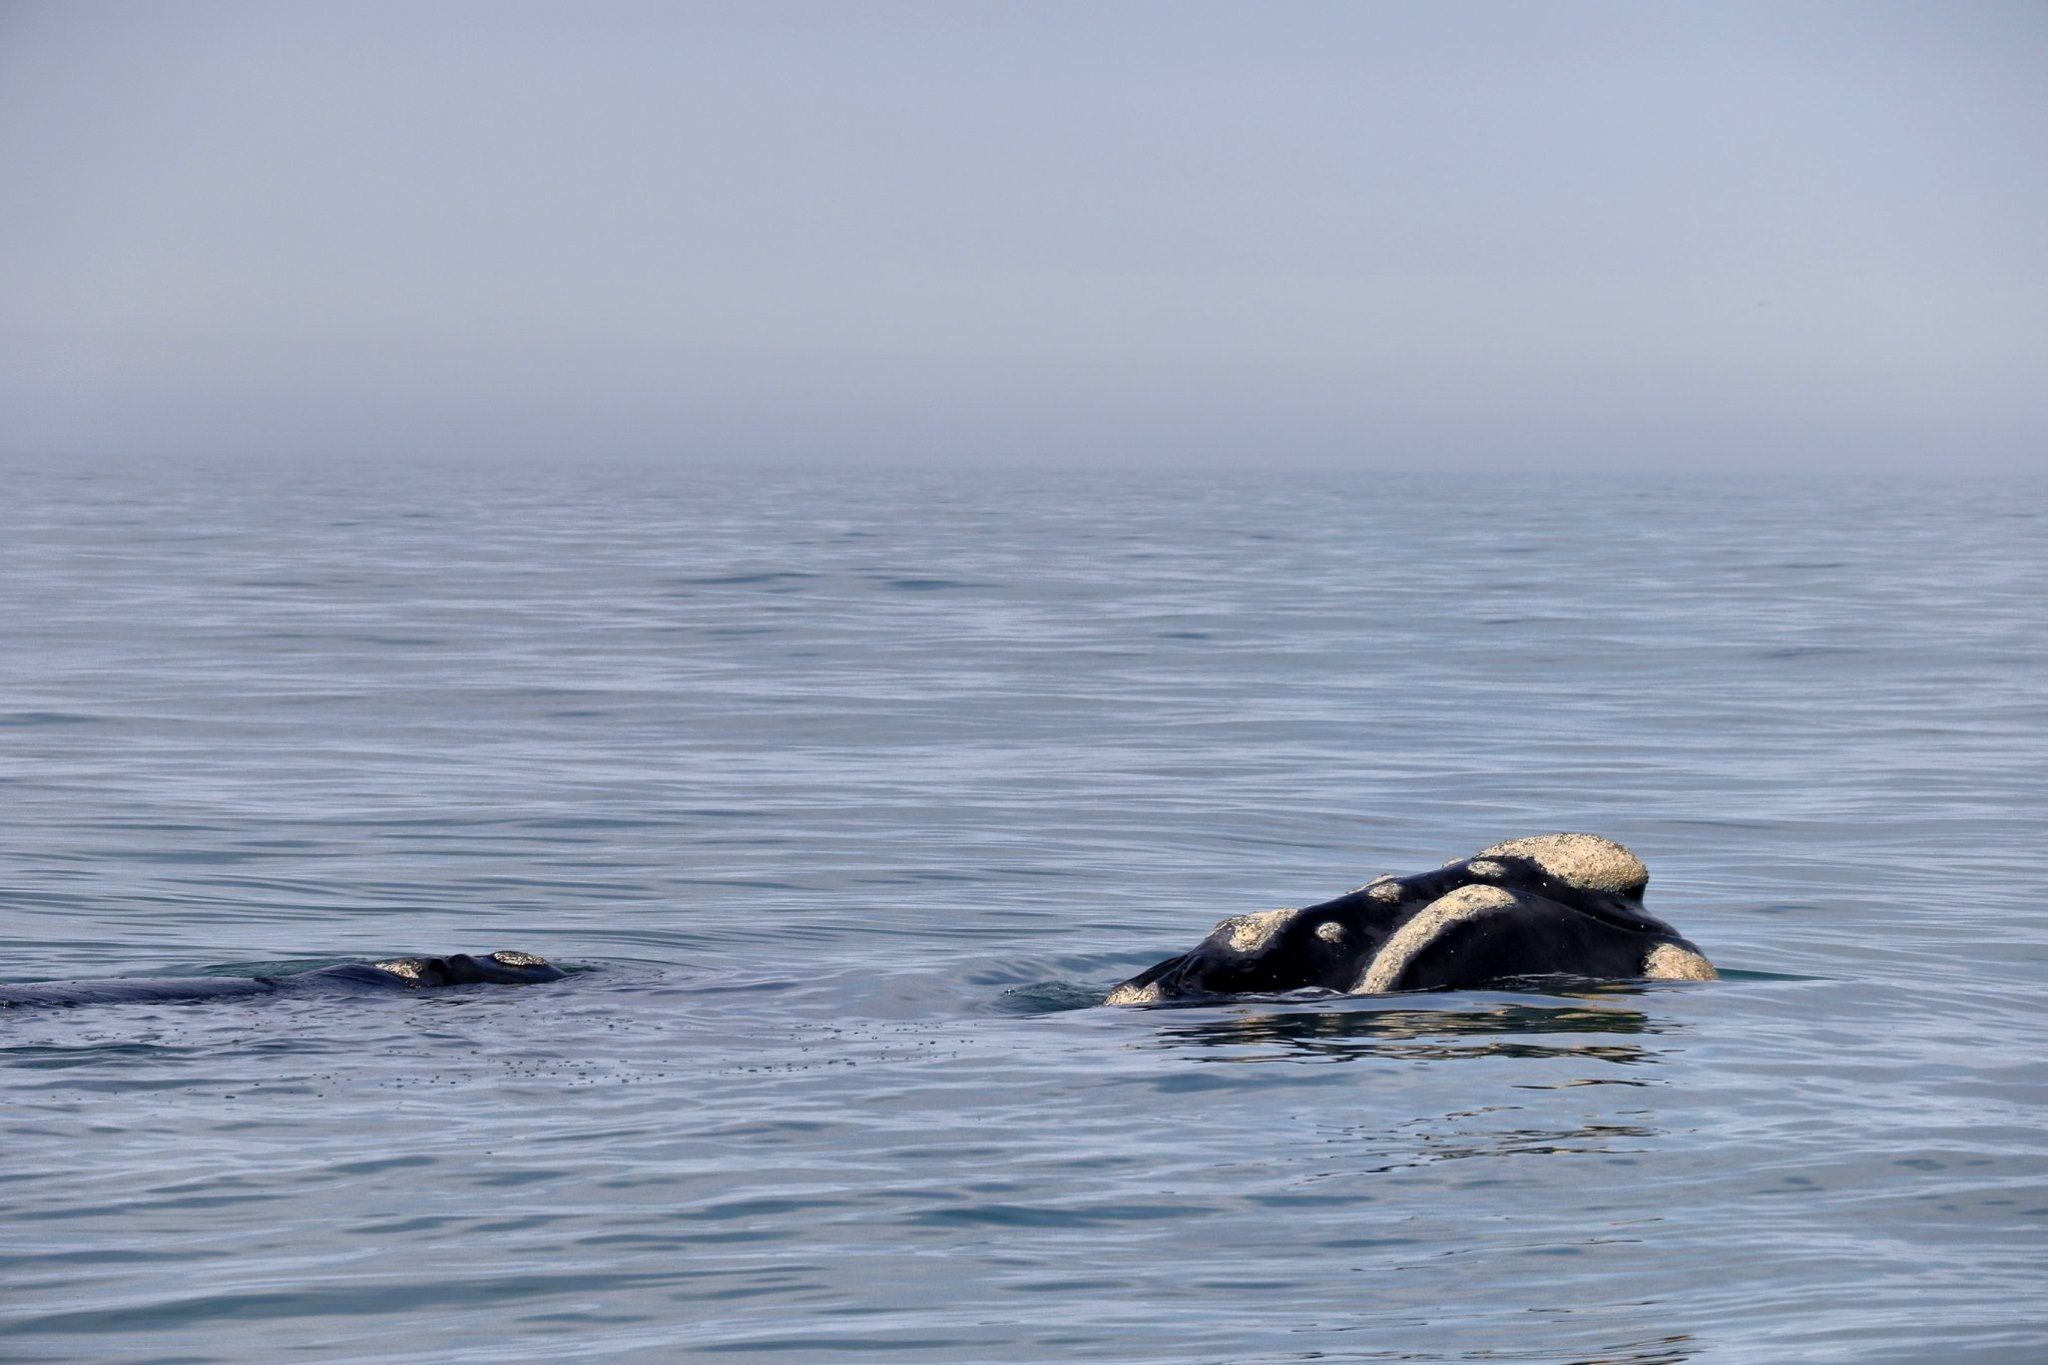 Close Encounter of a Southern Right Whale and its Calf